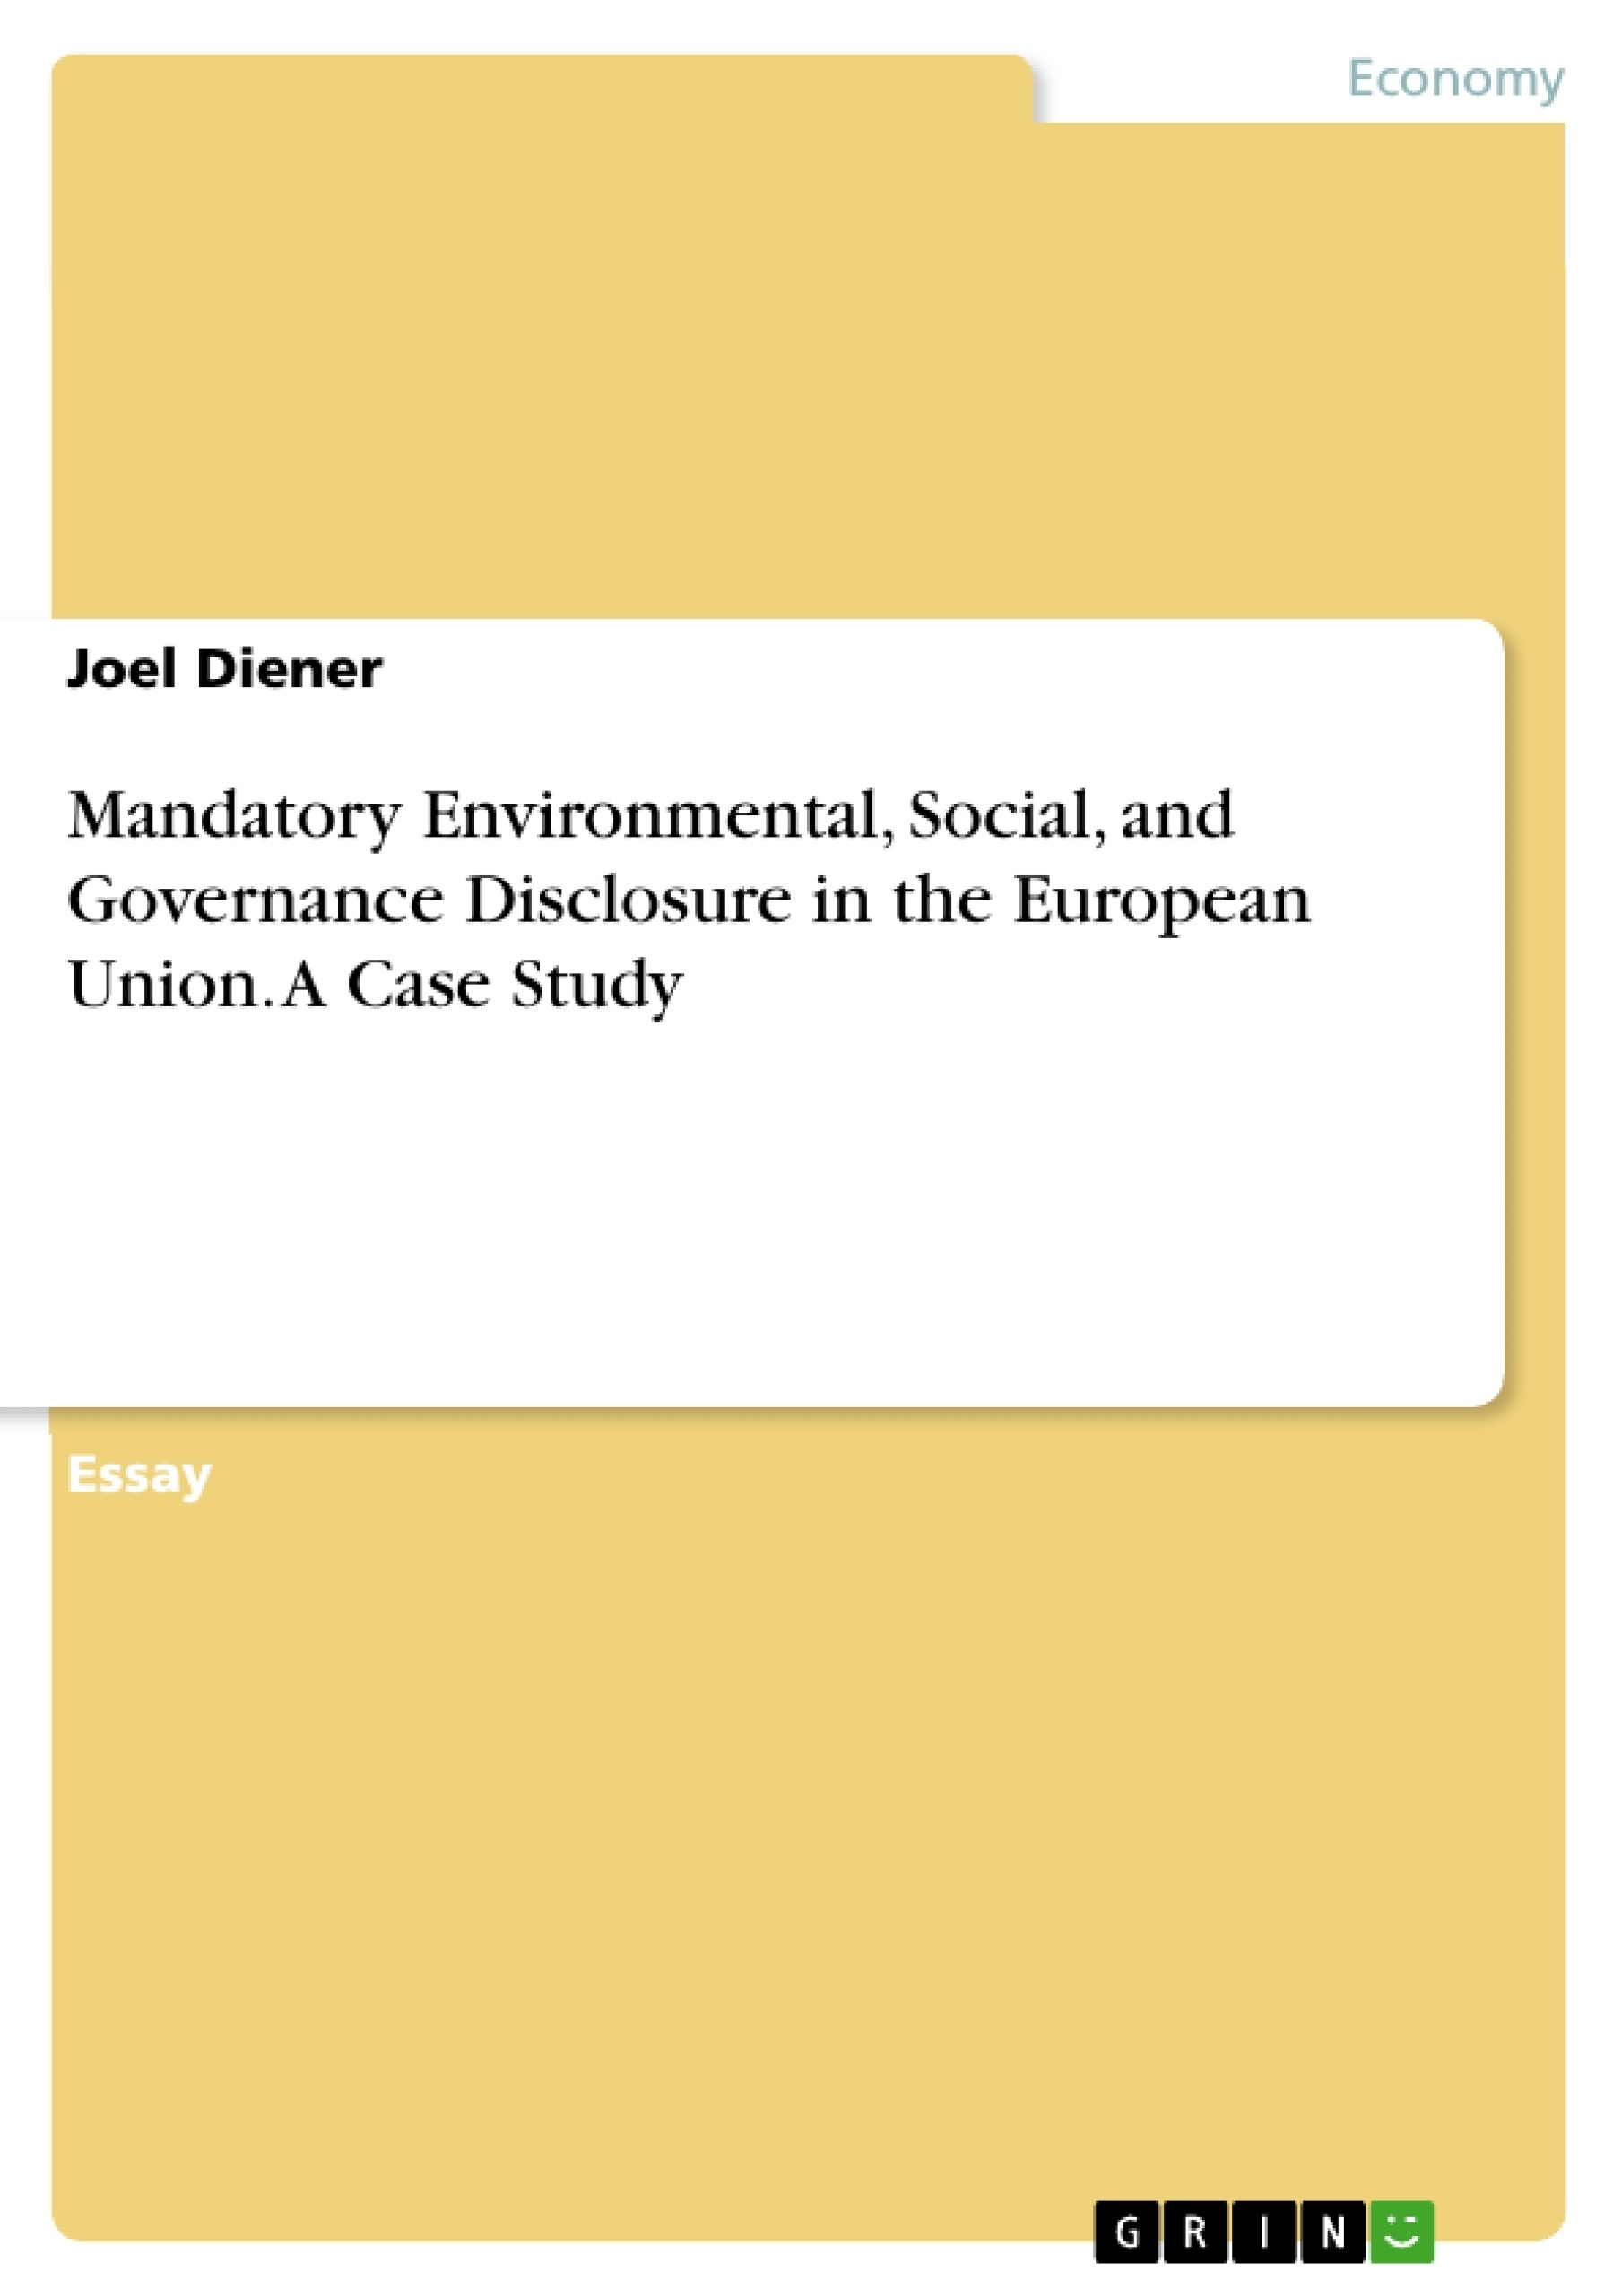 Title: Mandatory Environmental, Social, and Governance Disclosure in the European Union.  A Case Study